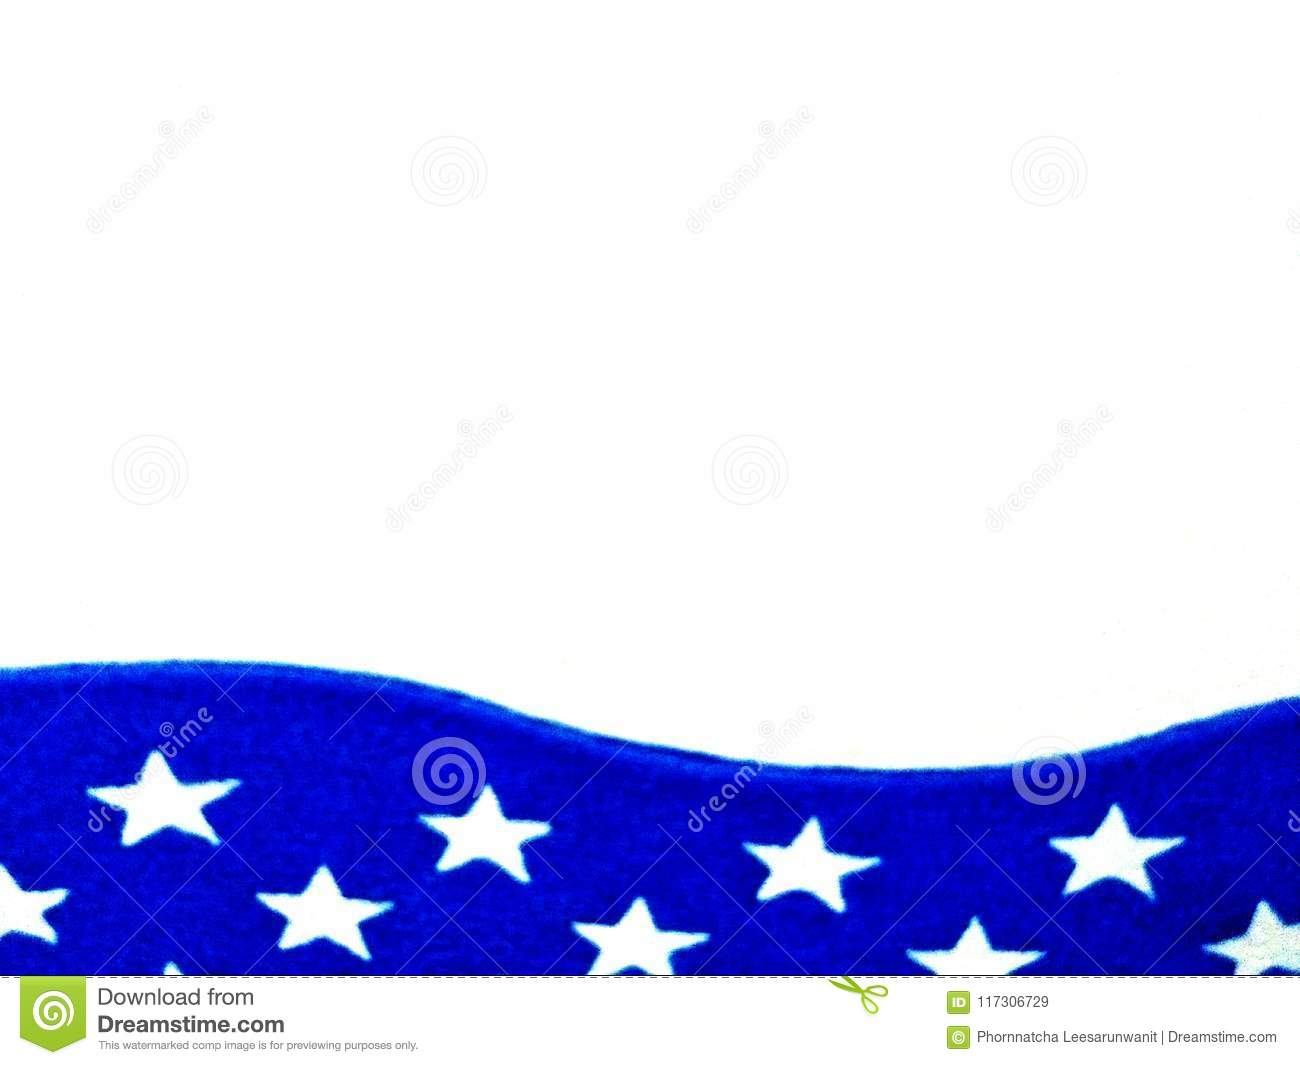 white stars in white and dark blue twotones backgrounds.-illustration